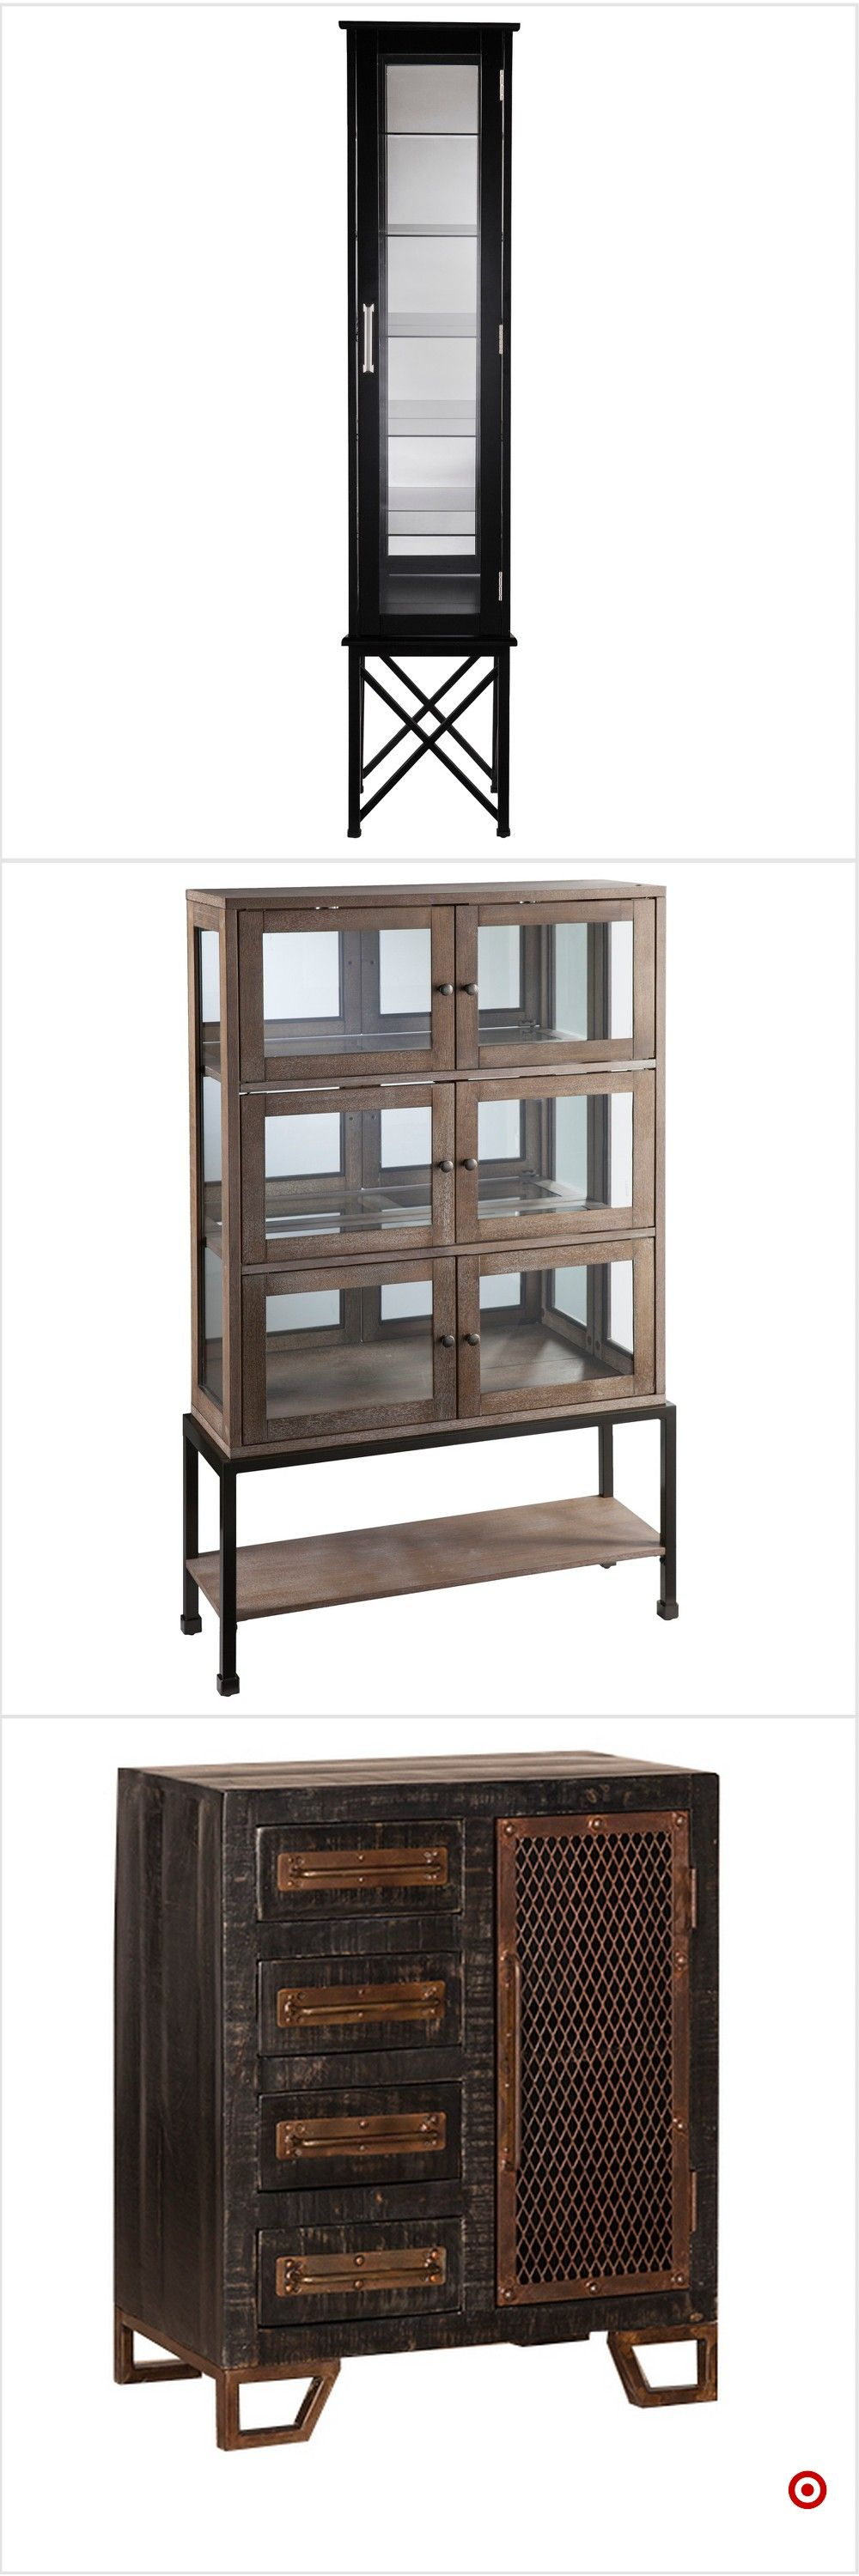 Shop Target for decorative storage cabinets you will love at great ...